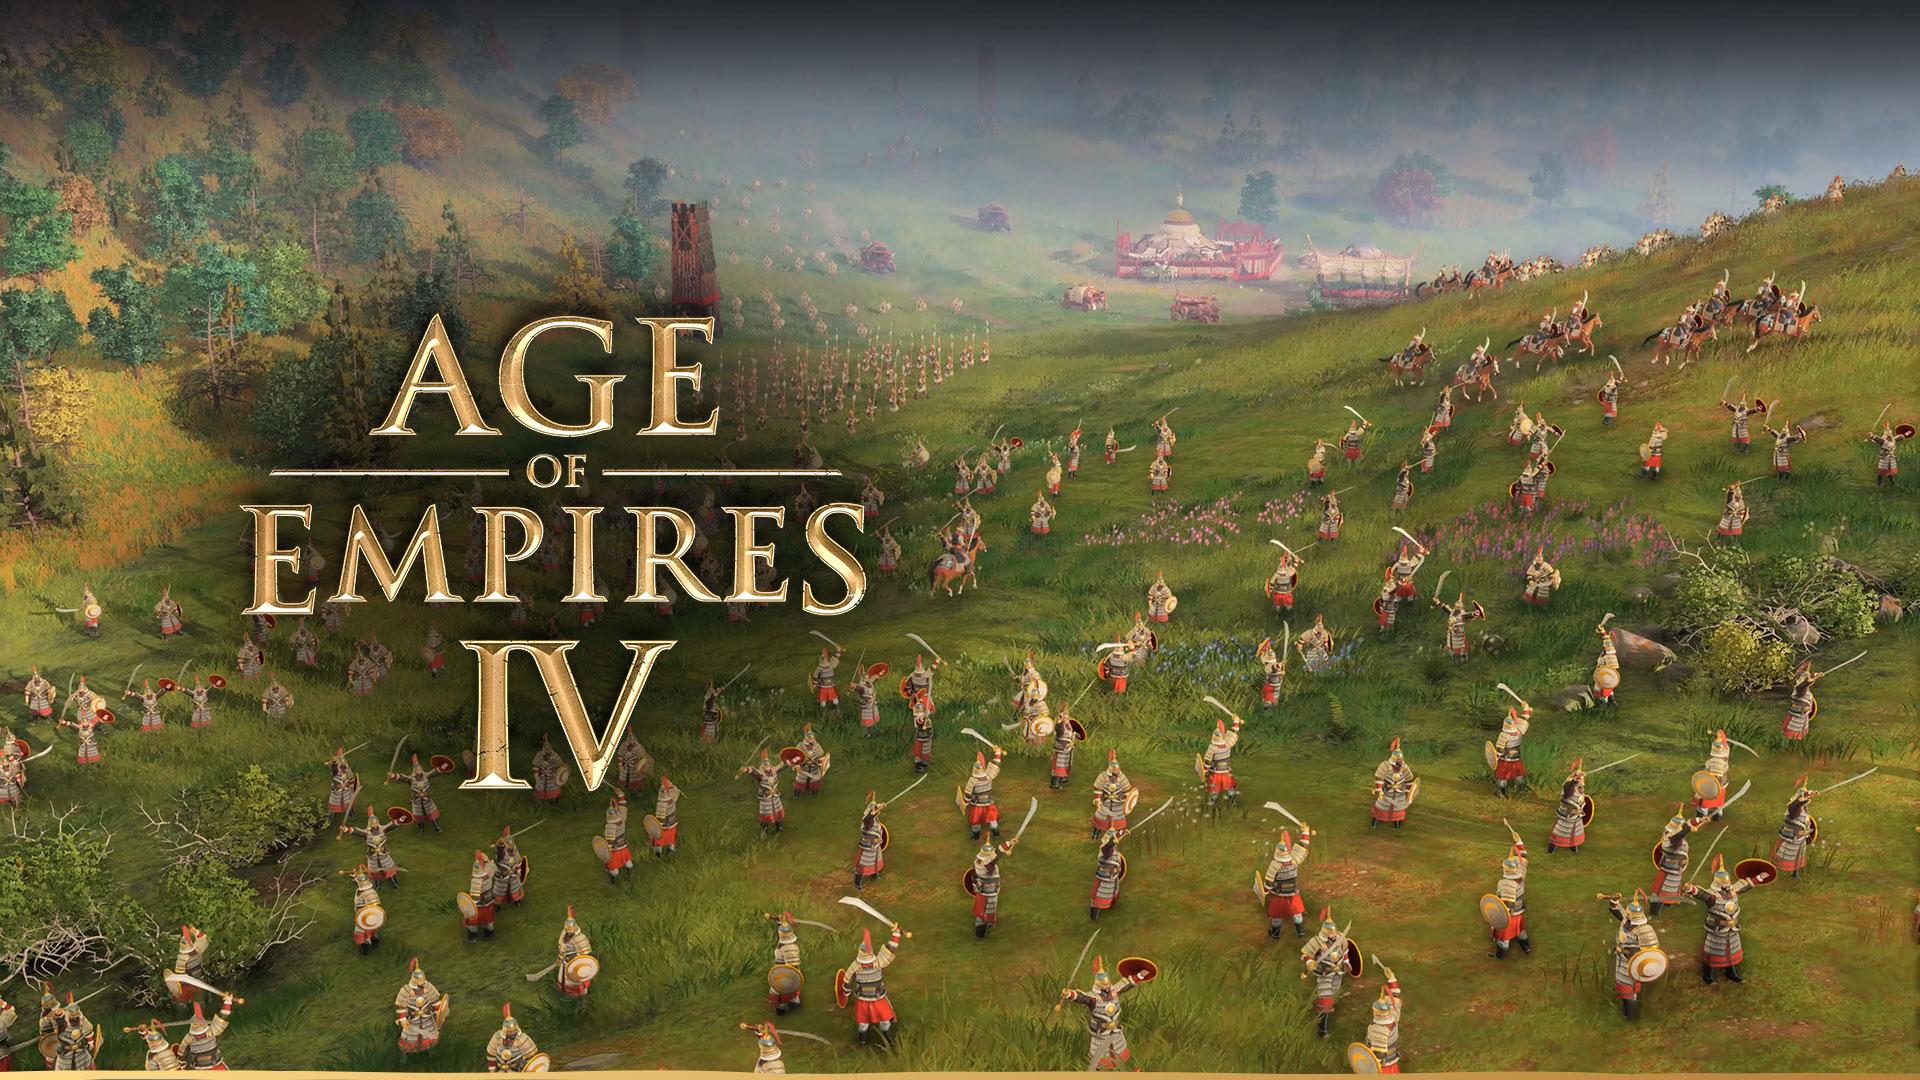 Age of Empires IV, an army of soldiers with swords and shields in full armour in a grassy valley